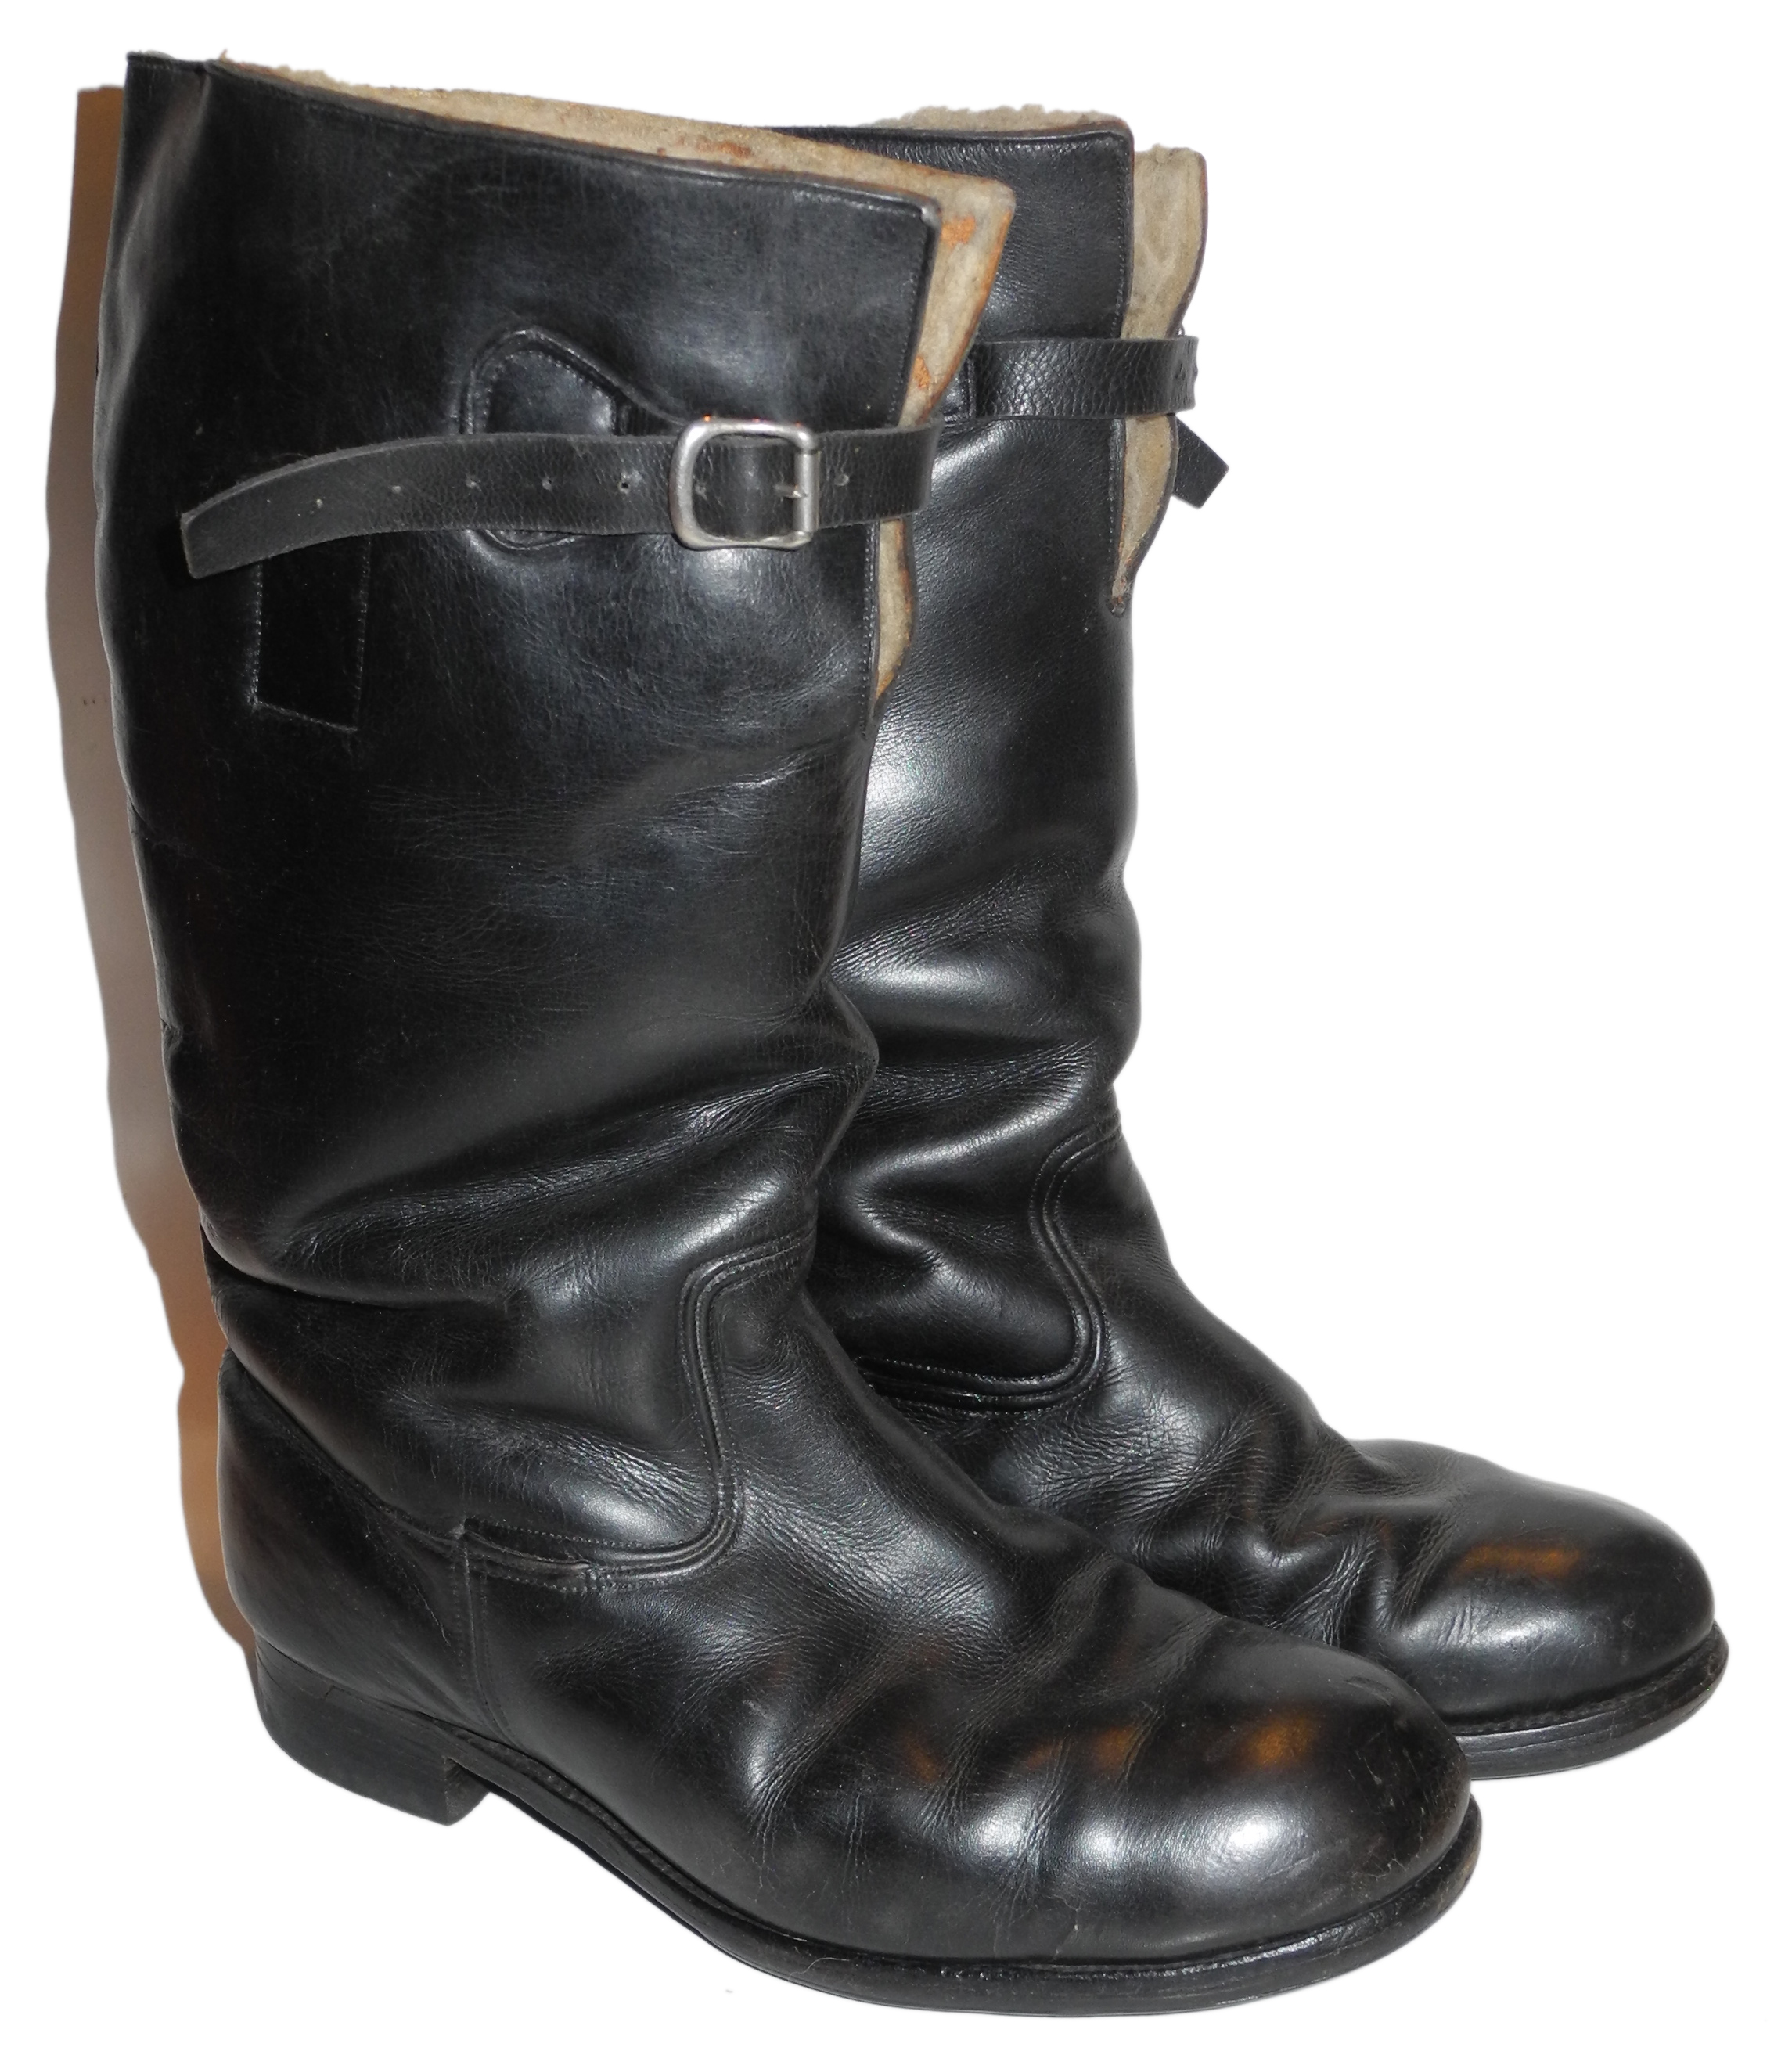 RAF Battle of Britain 1936 pattern Flying Boots